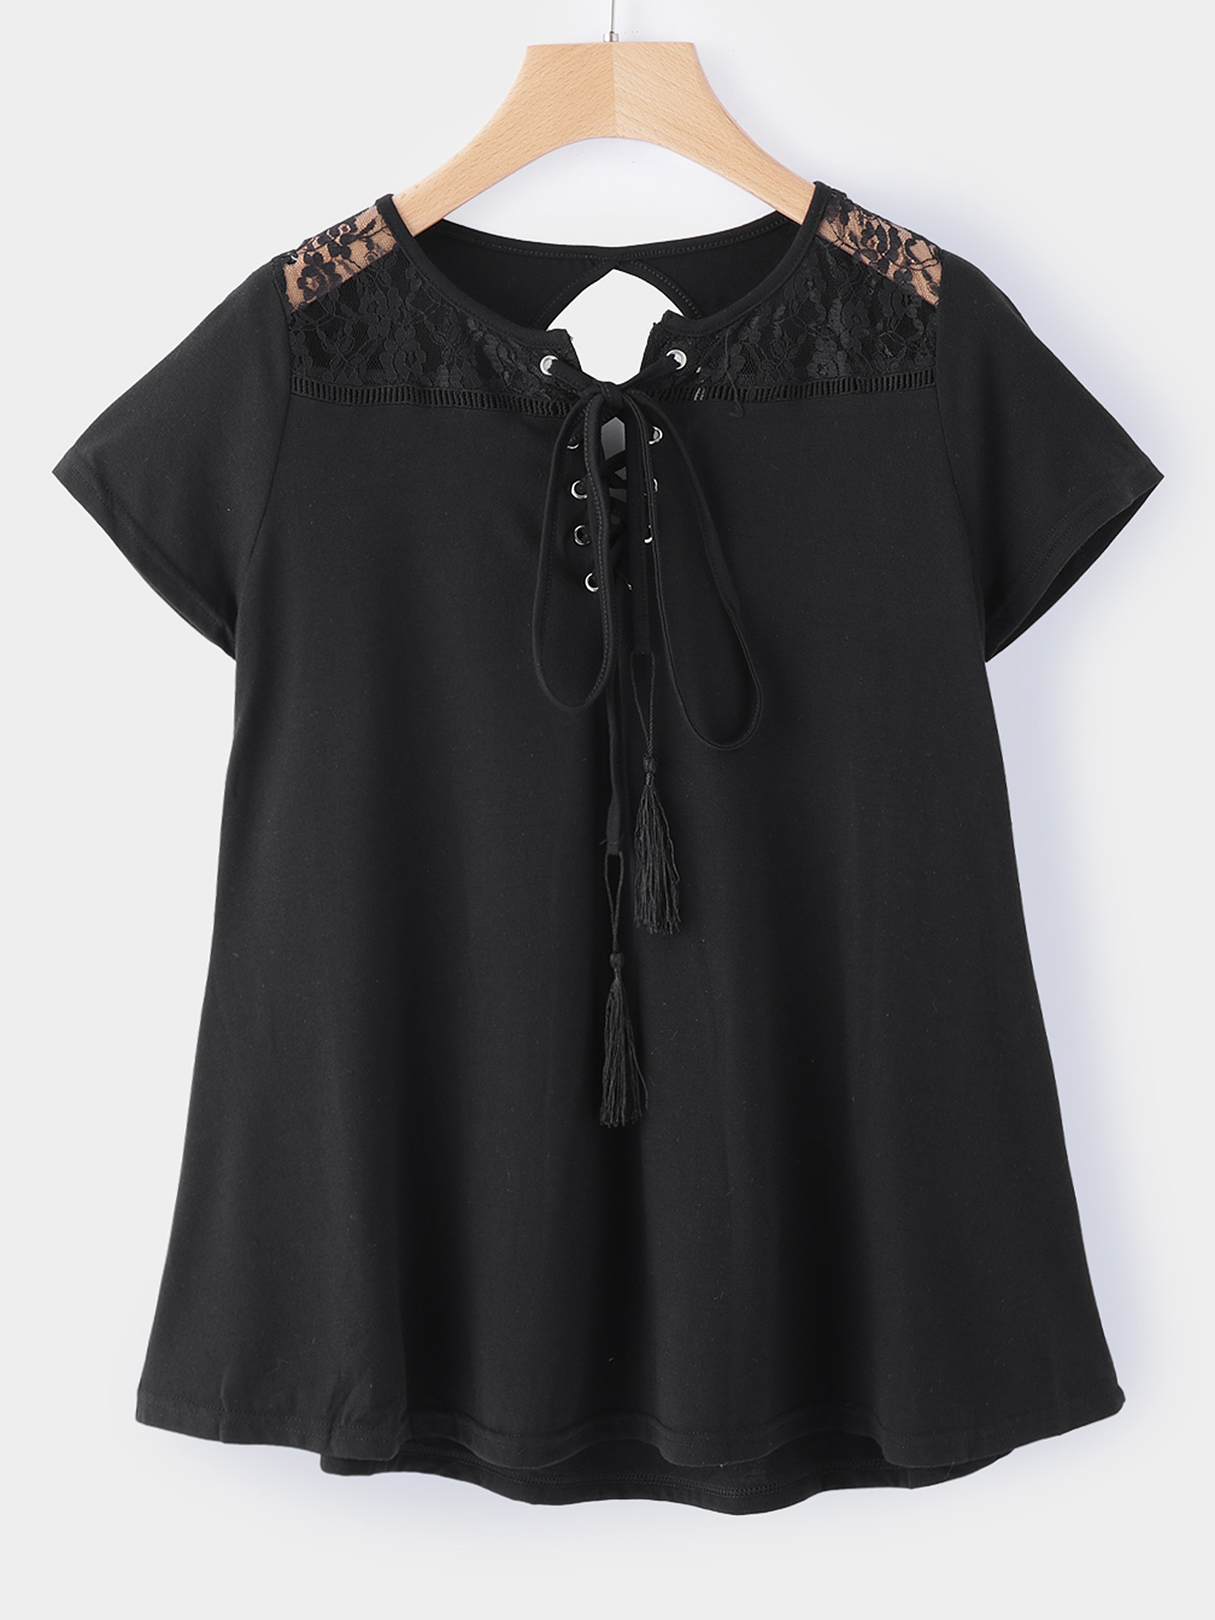 Black Cut Out Round Neck Short Sleeves T-shirts цены